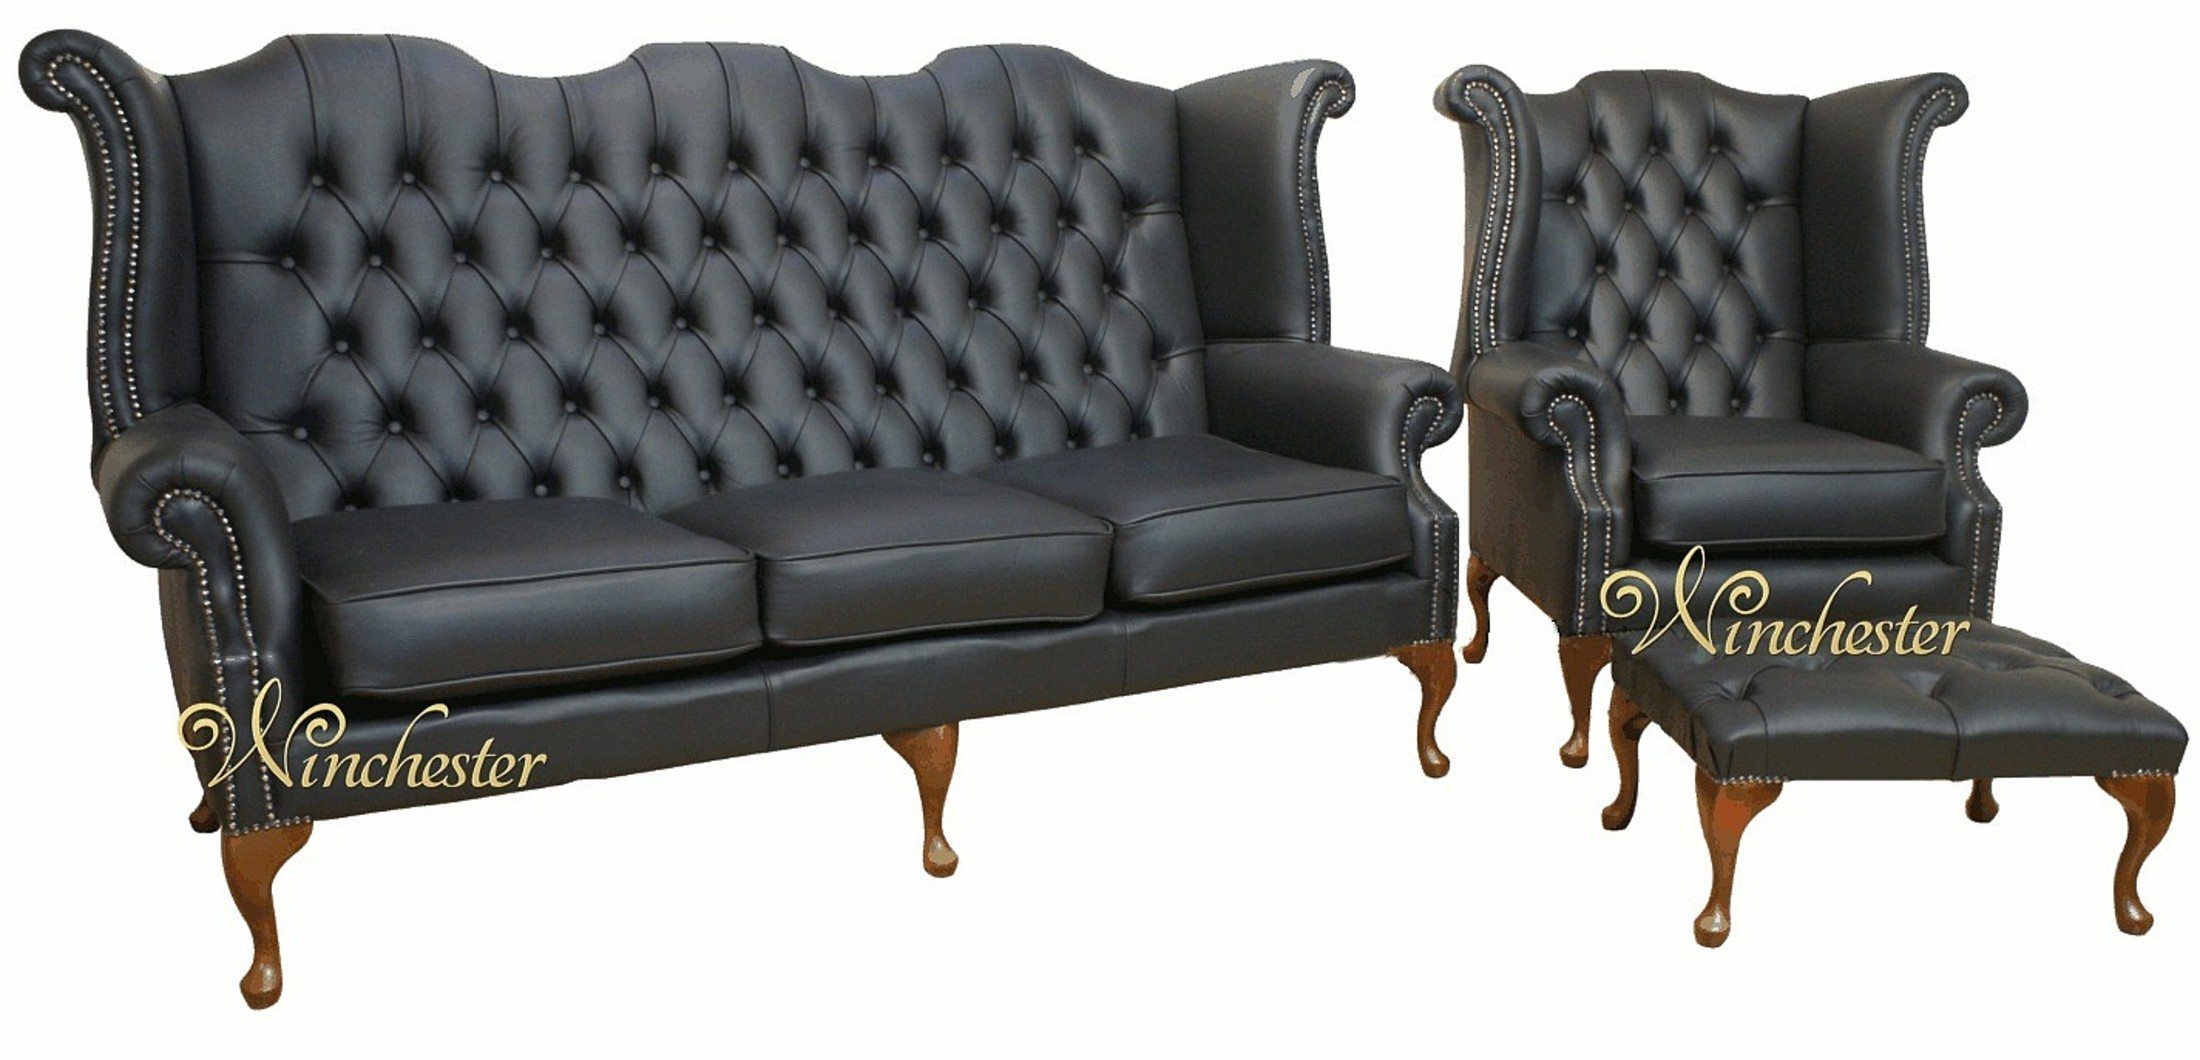 Chesterfield Queen Anne 3 Seater Sofa  Chesterfield Wing Chair Footstool Black Leather Wc